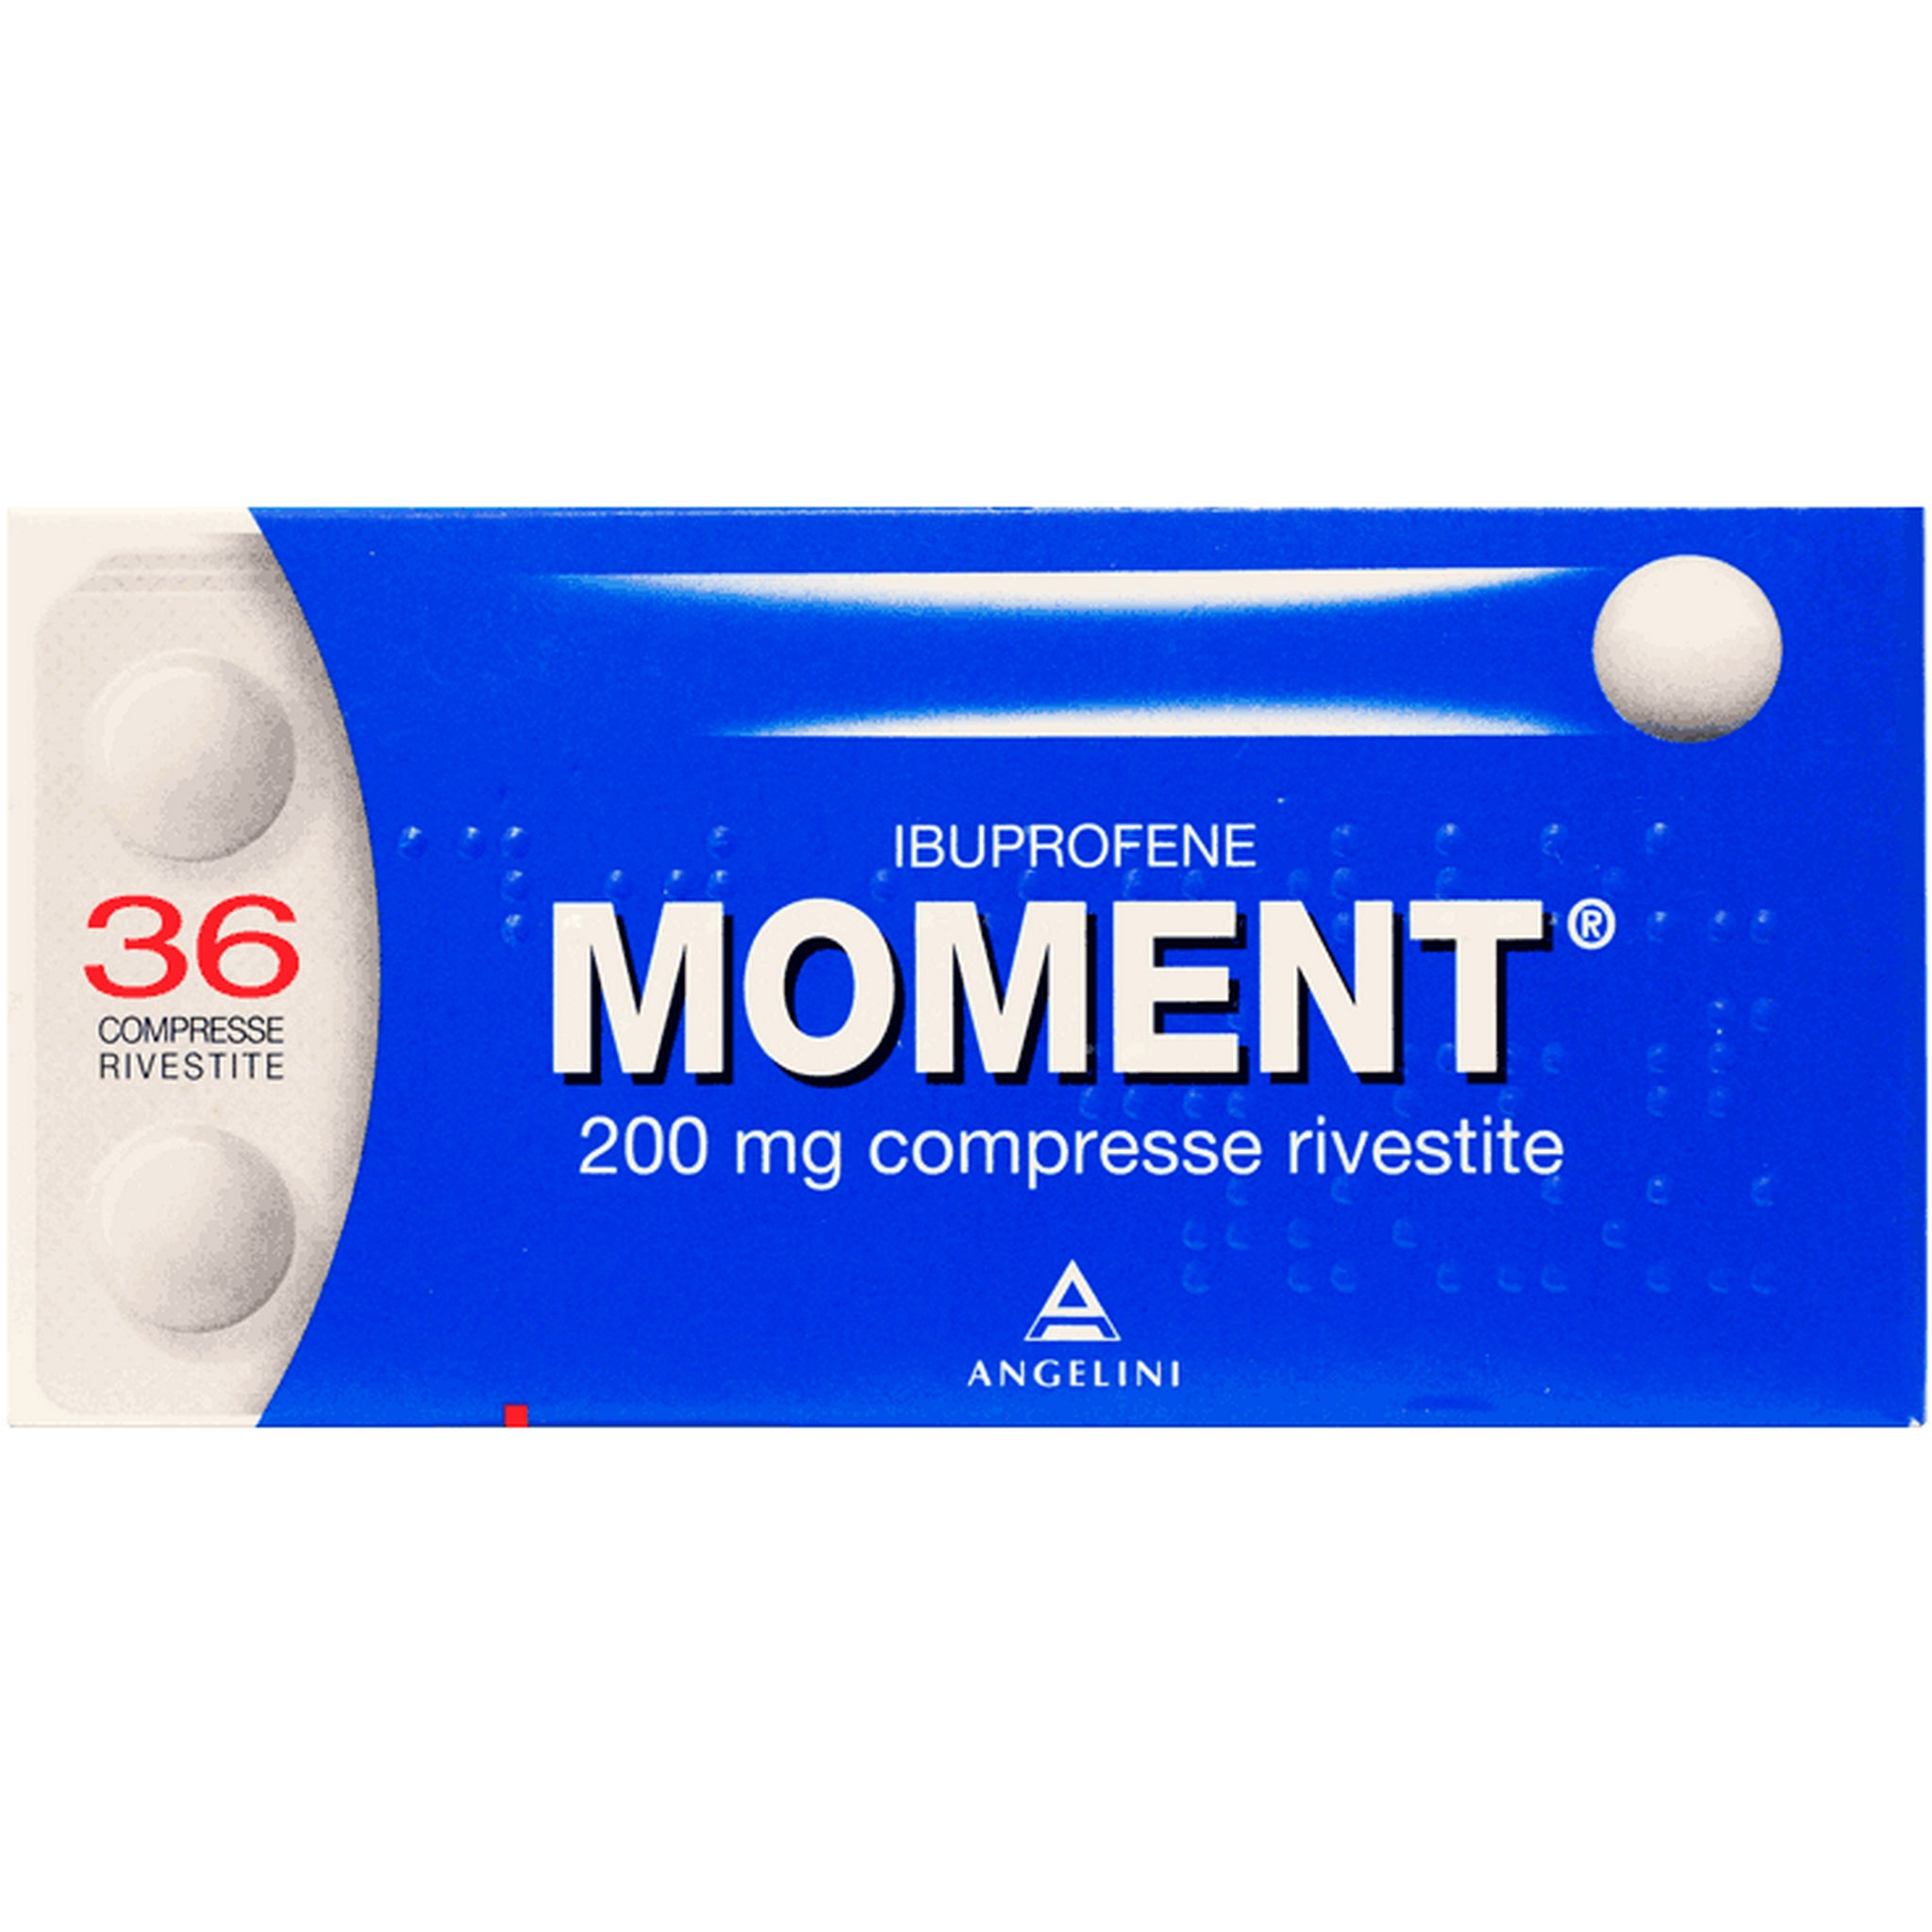 MOMENT 36 COMPRESSE RIV 200MG